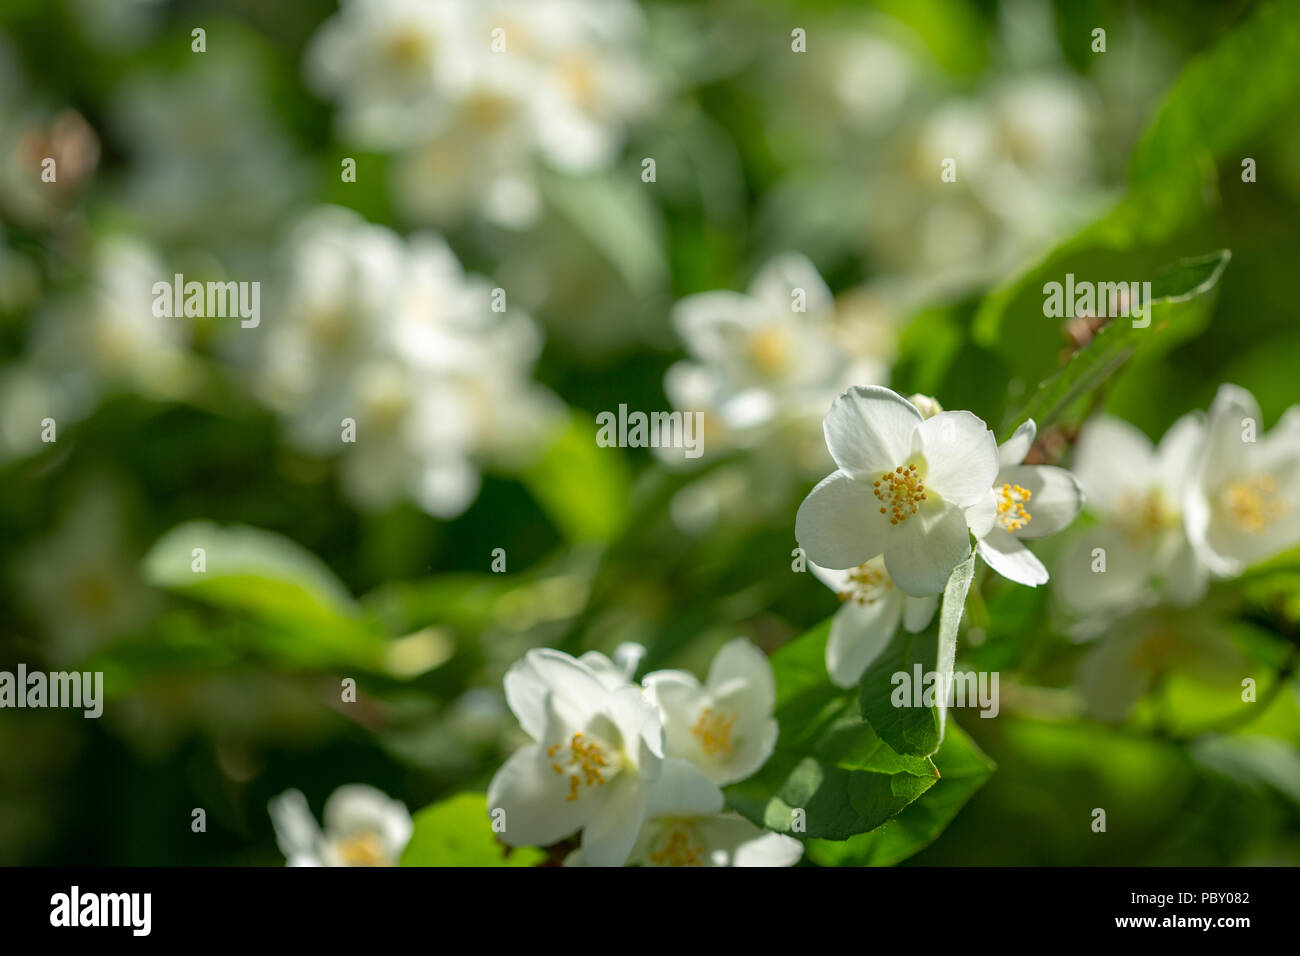 Beautiful Blooming Jasmine Branch With White Flowers At Sunlight In